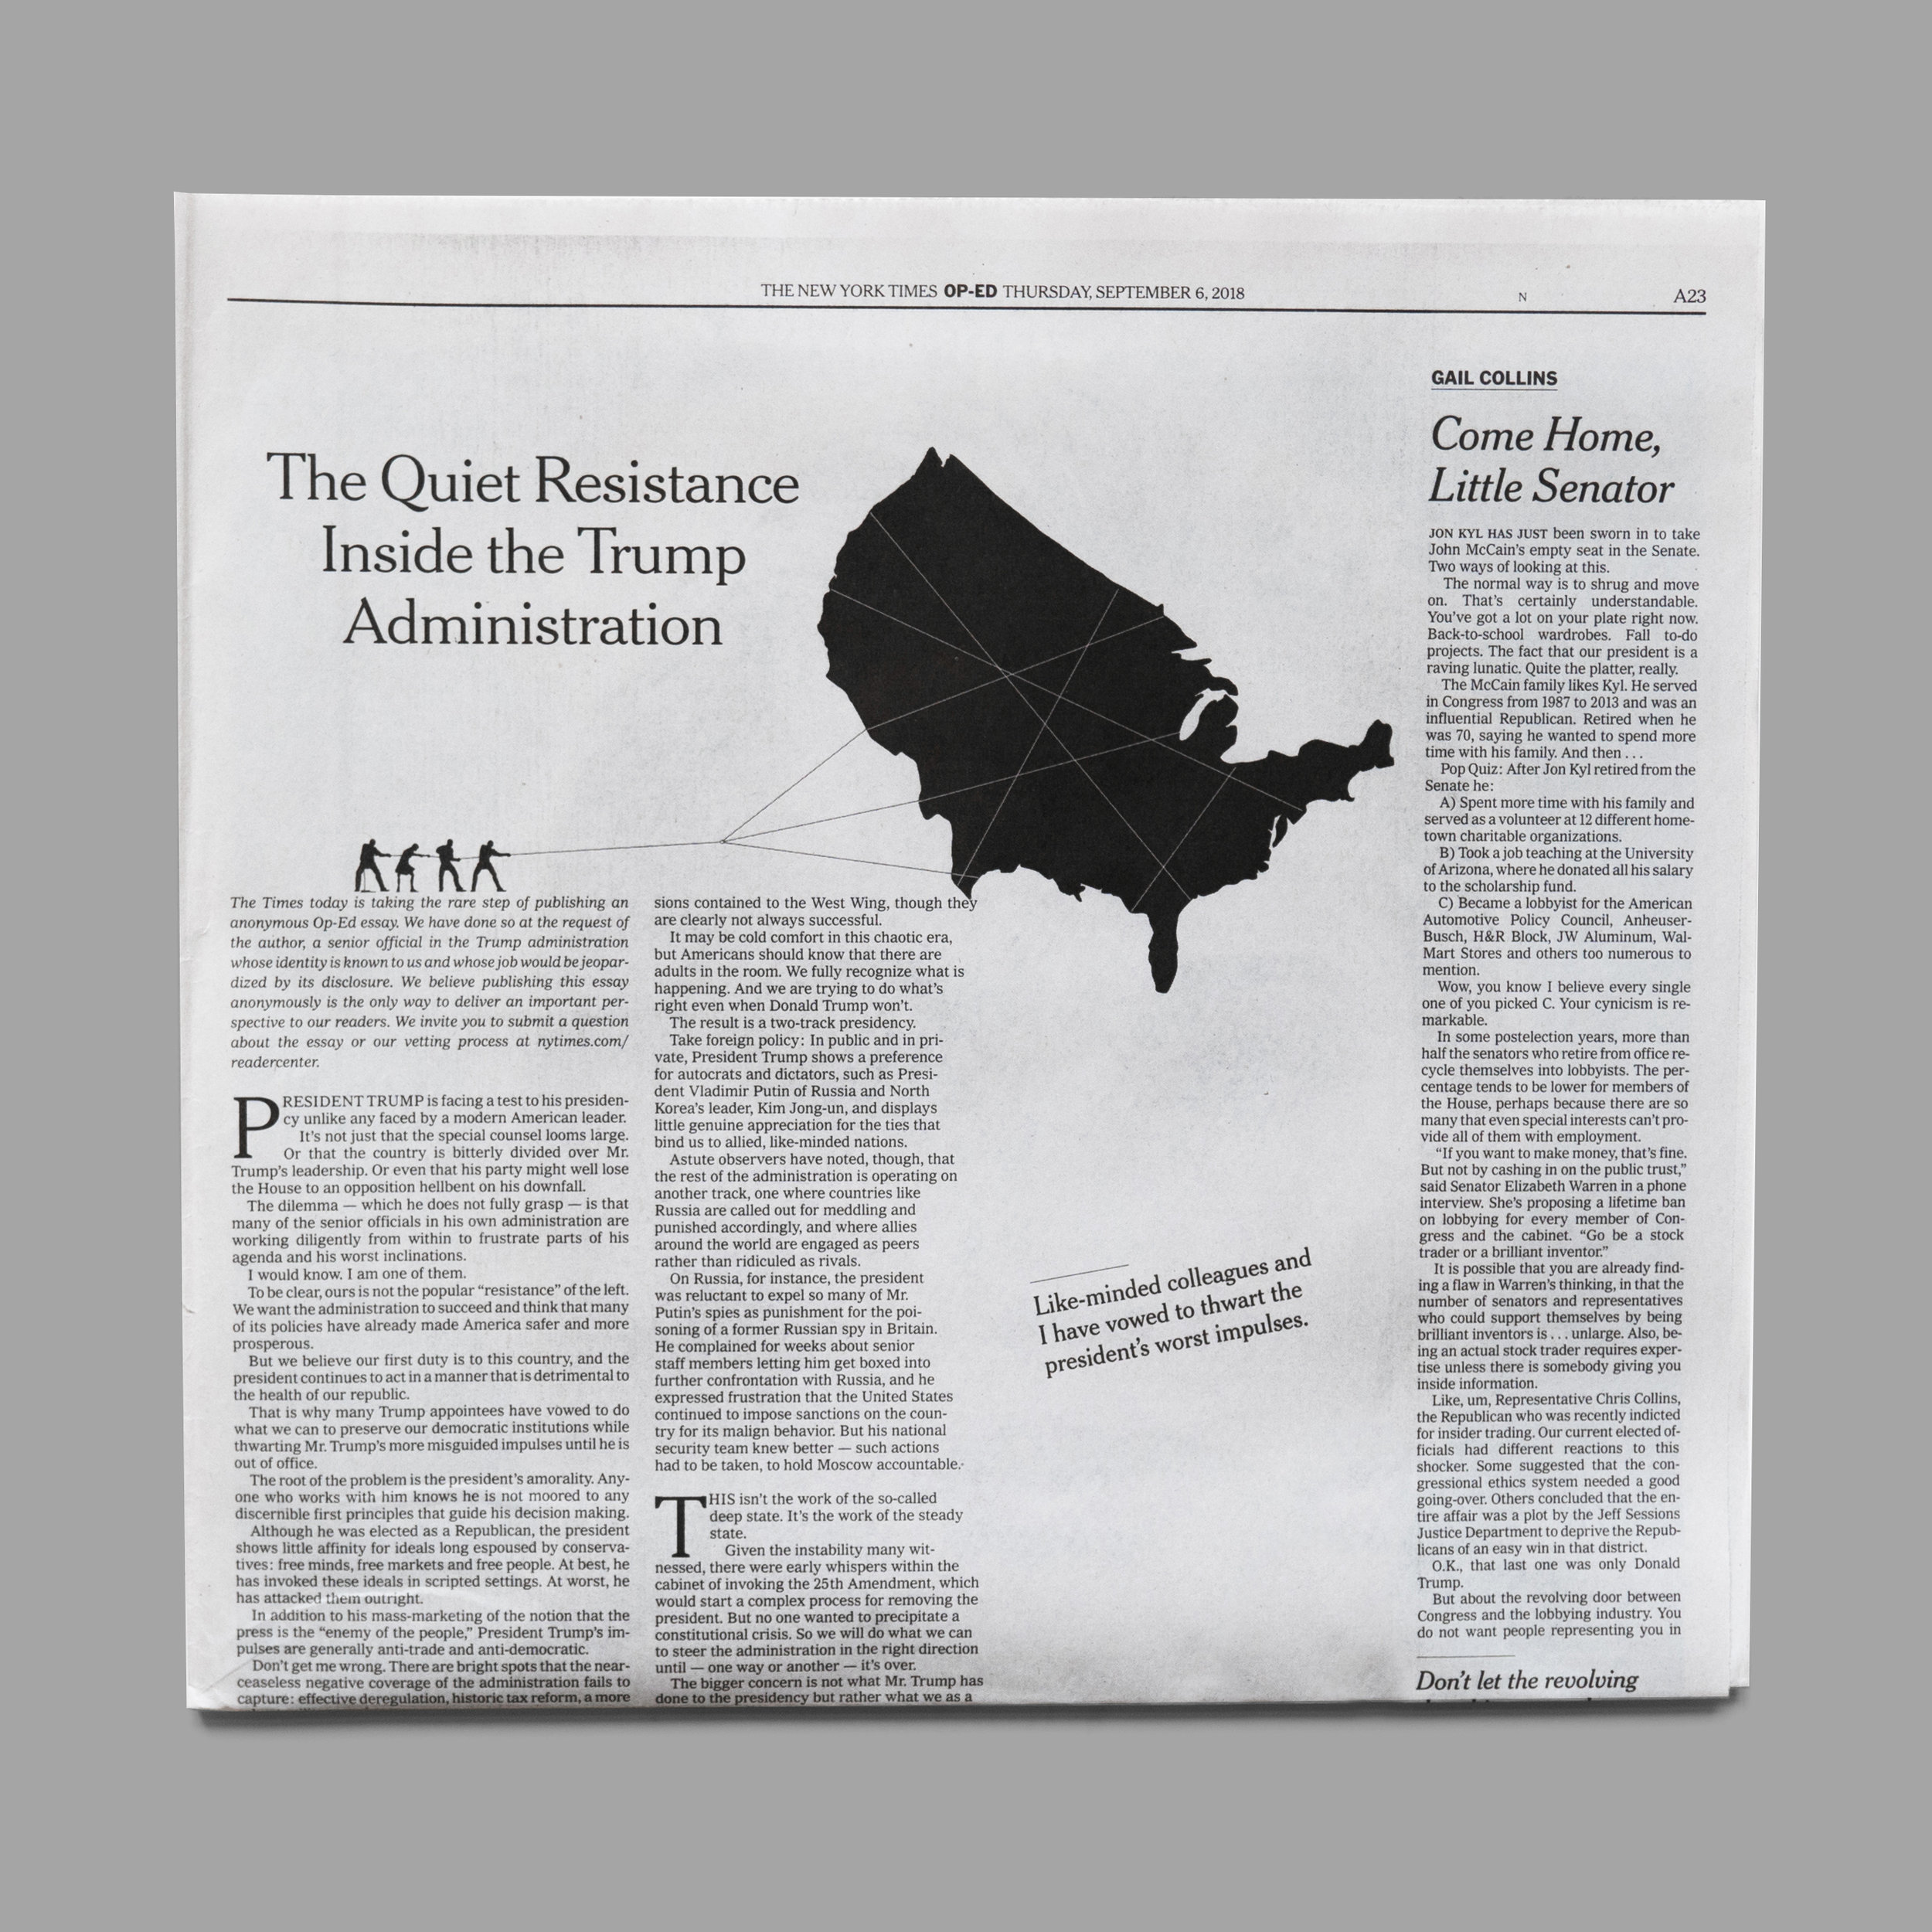 The Anonymous Op-Ed. The Quiet Resistance Inside The Trump Administration.